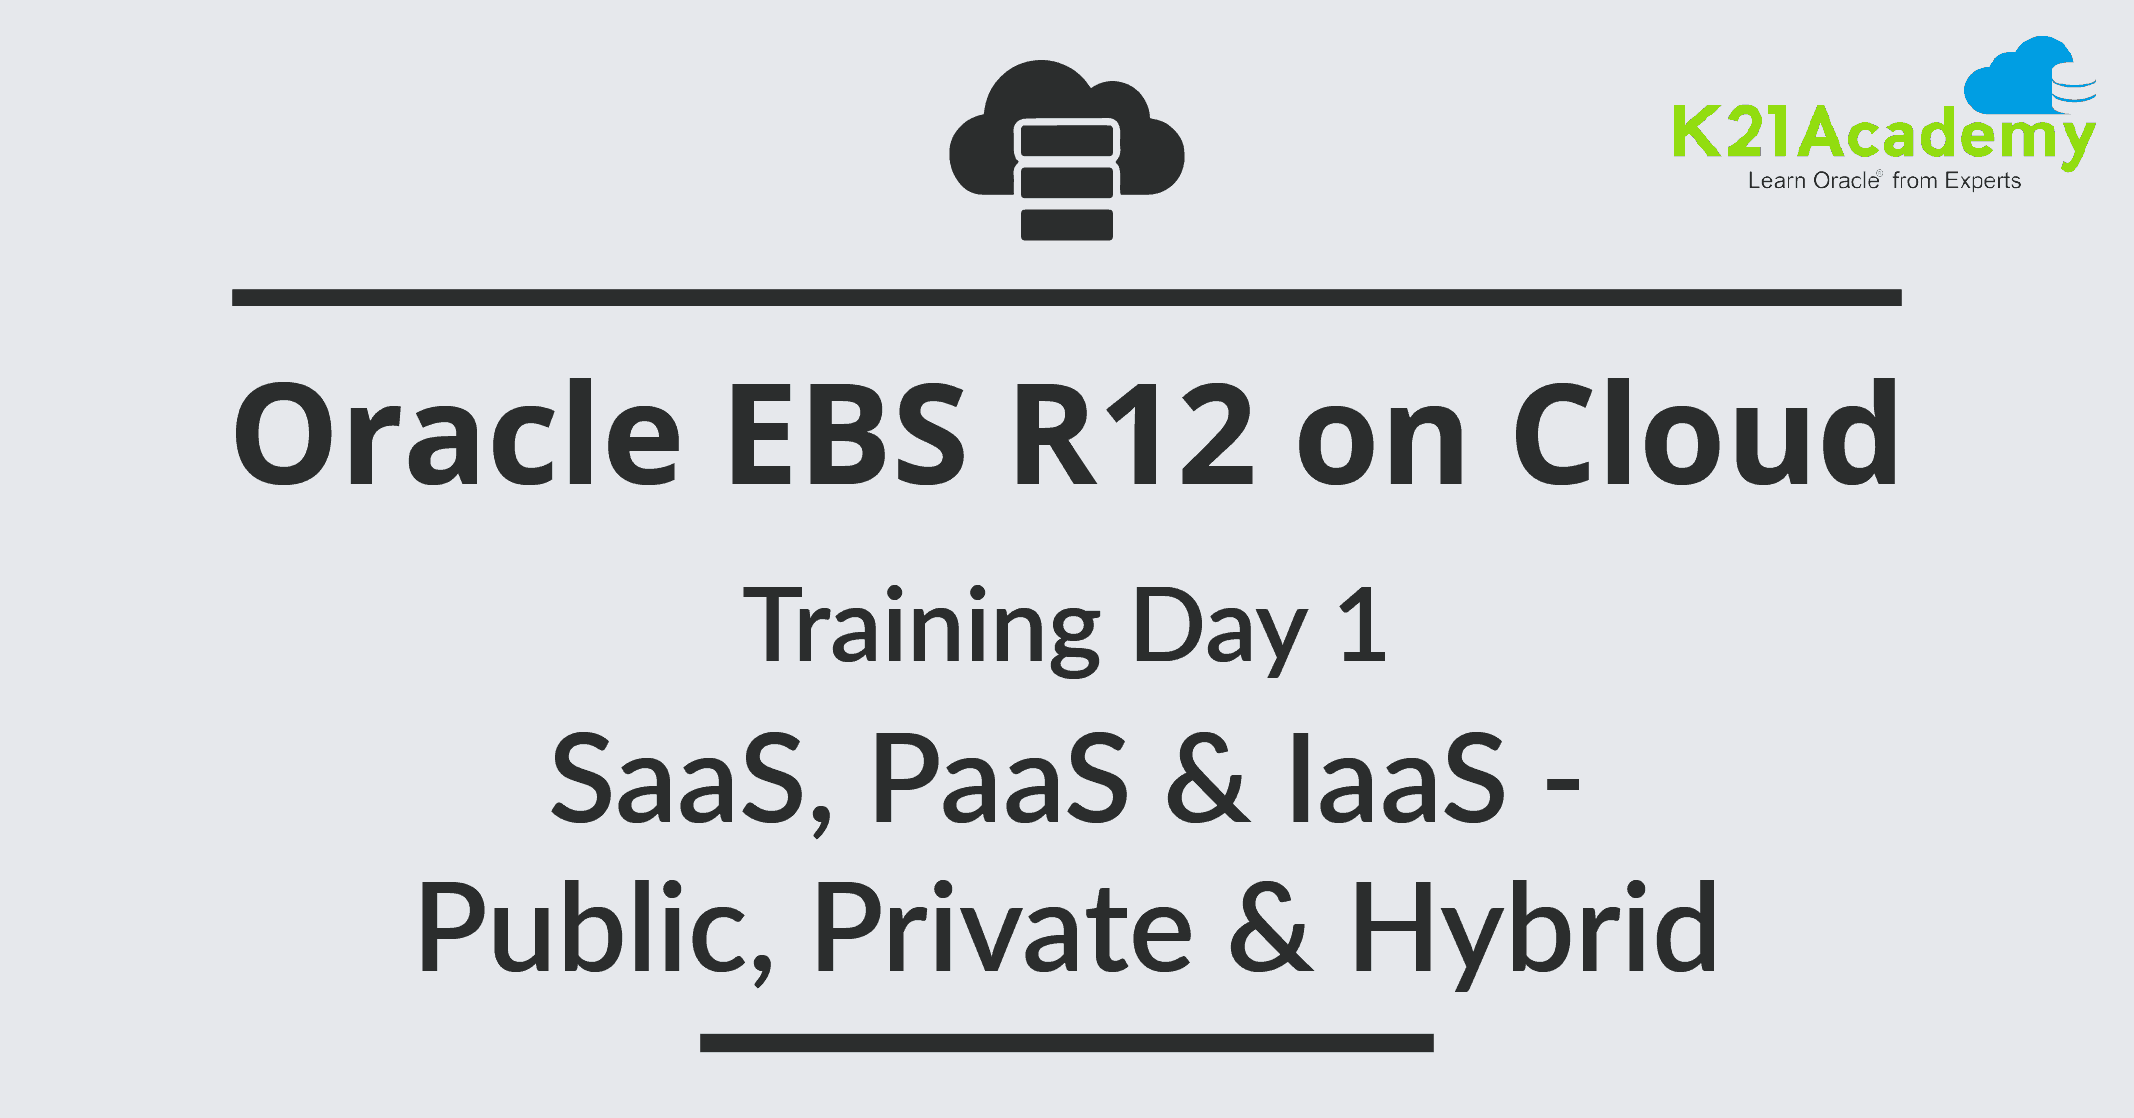 Oracle EBS R12 on Cloud for Apps DBAs Training FAQs